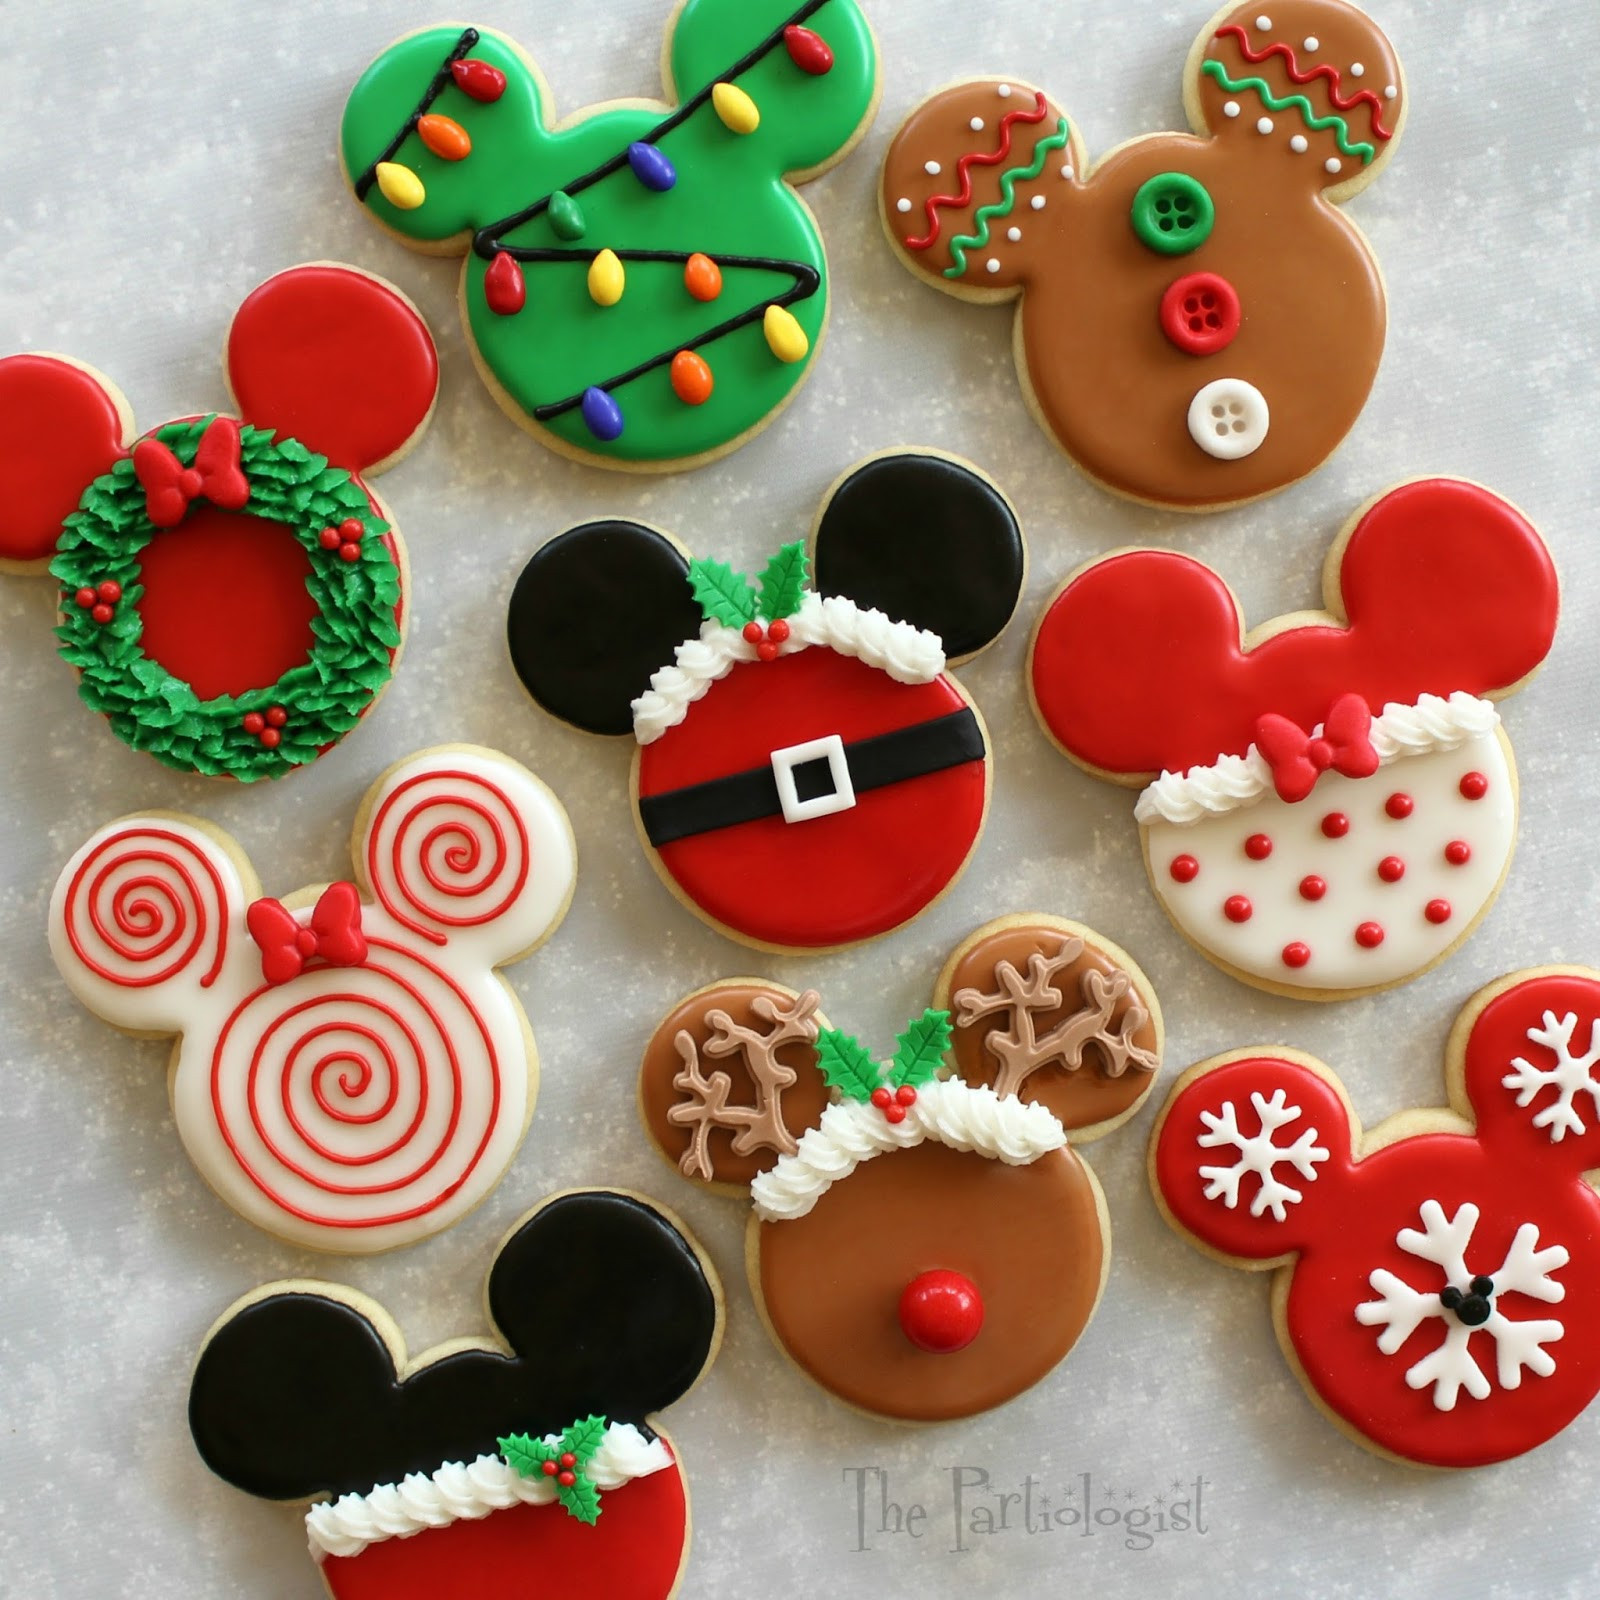 Making Christmas Cookies  The Partiologist Disney Themed Christmas Cookies